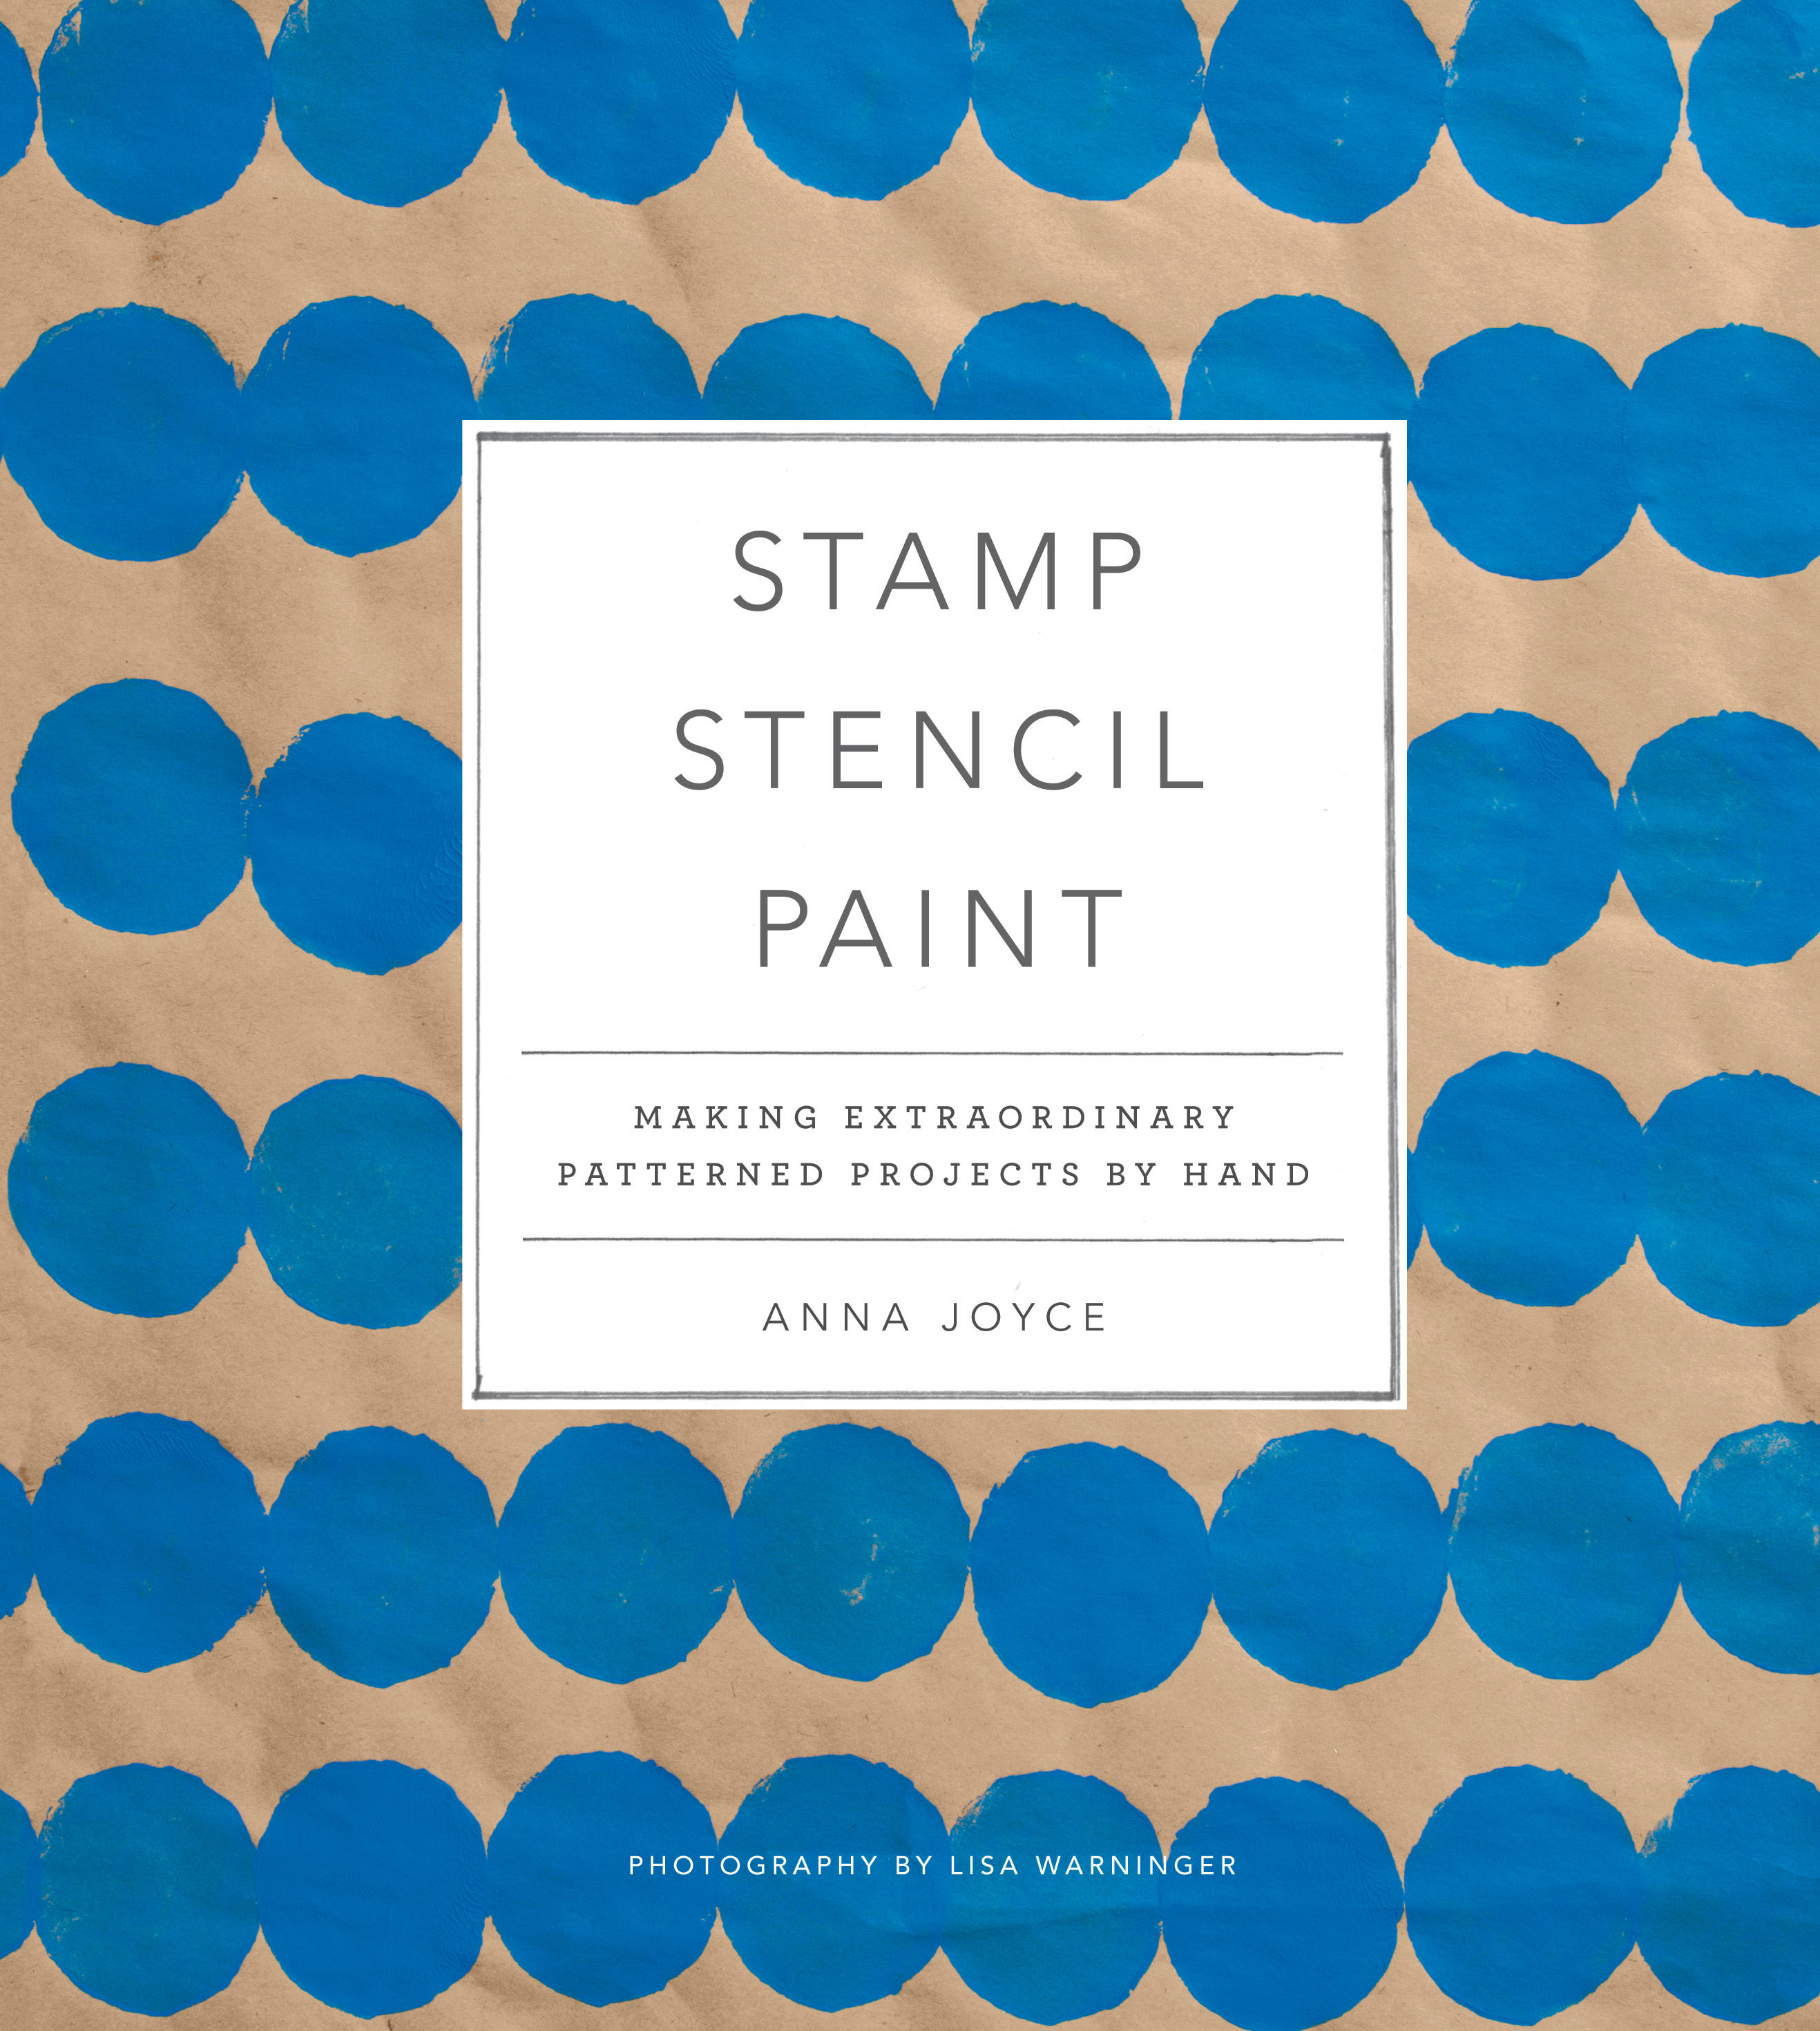 Stamp Stencil Paint book by Anna Joyce